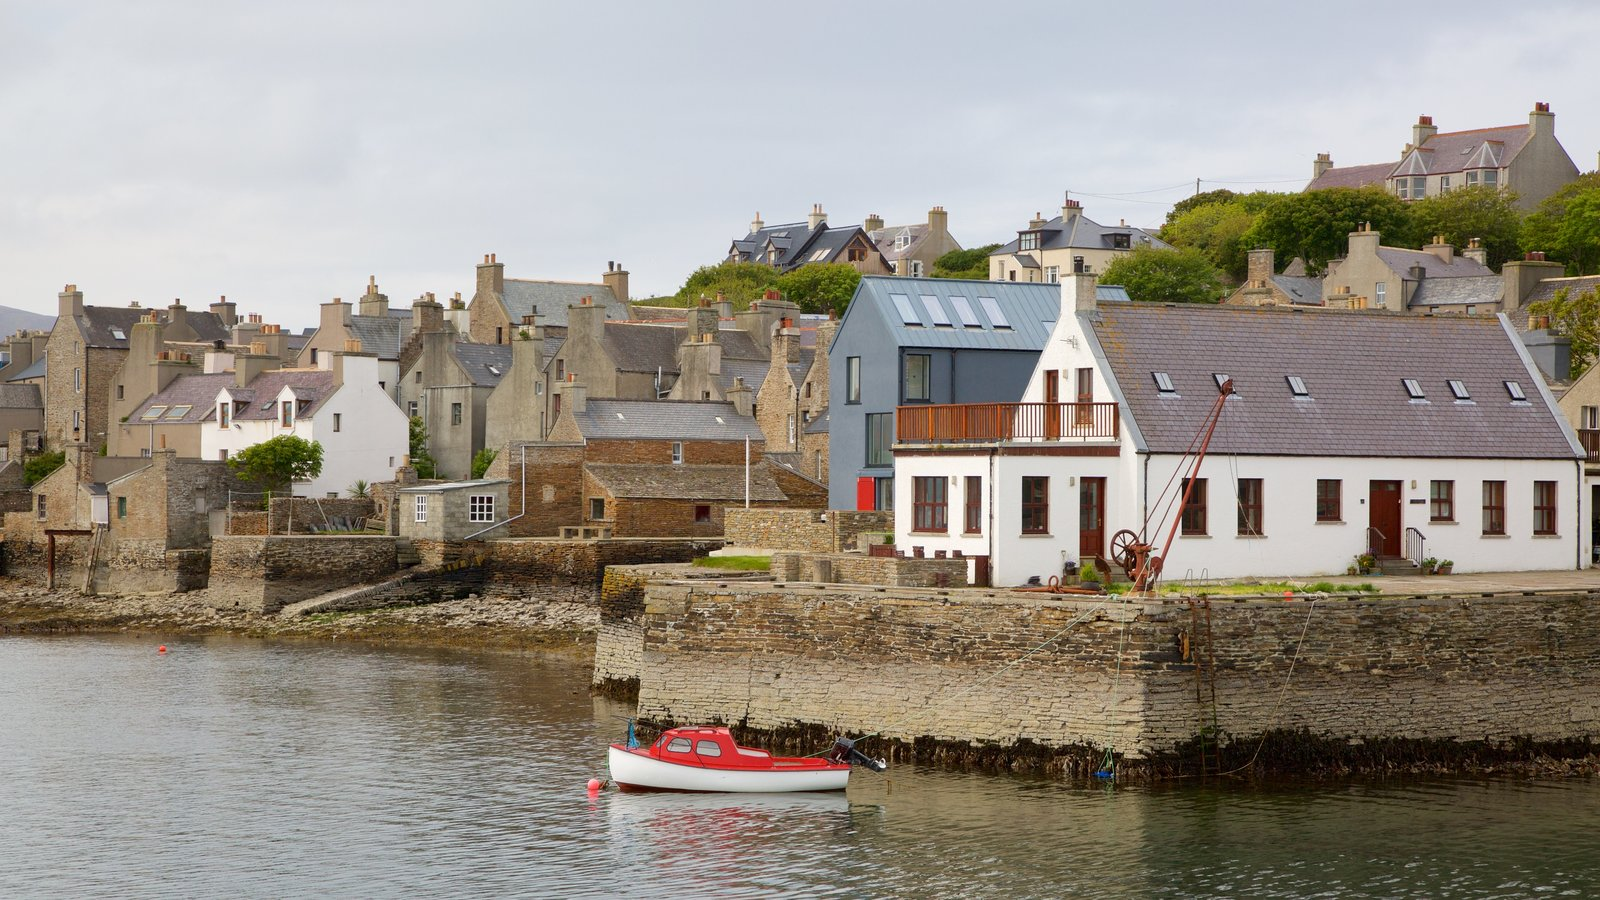 Stromness featuring a coastal town